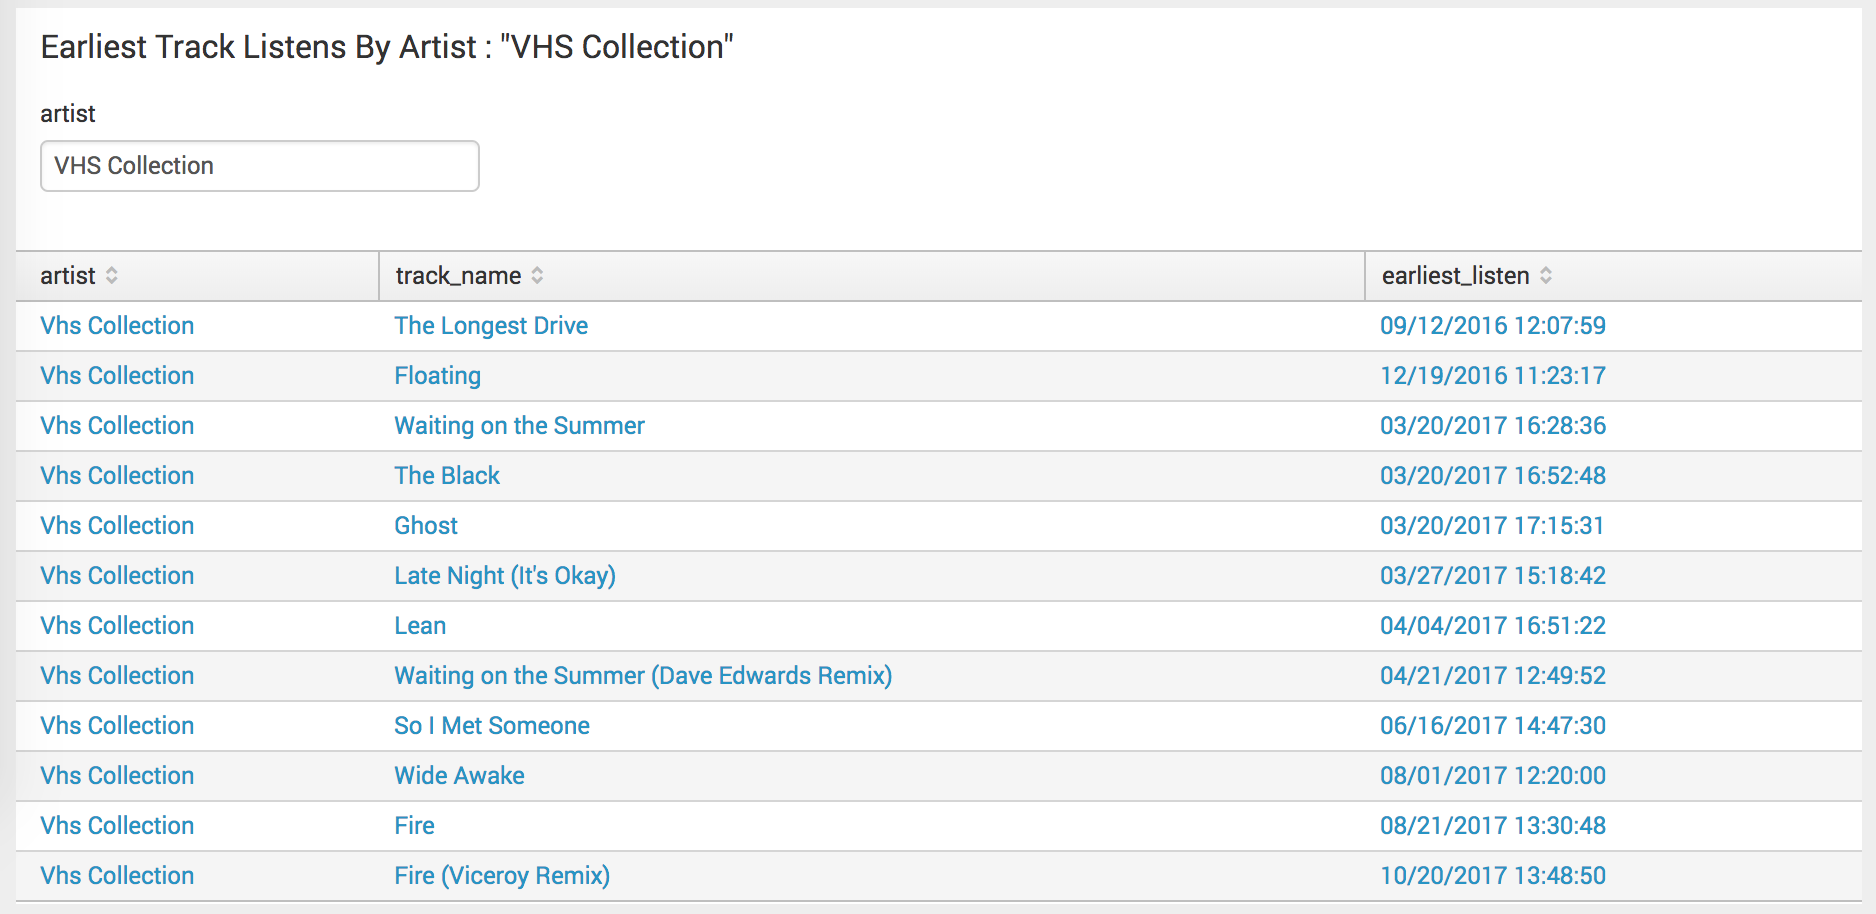 Screen image of a chart showing the earliest listens of tracks by the band VHS collection.